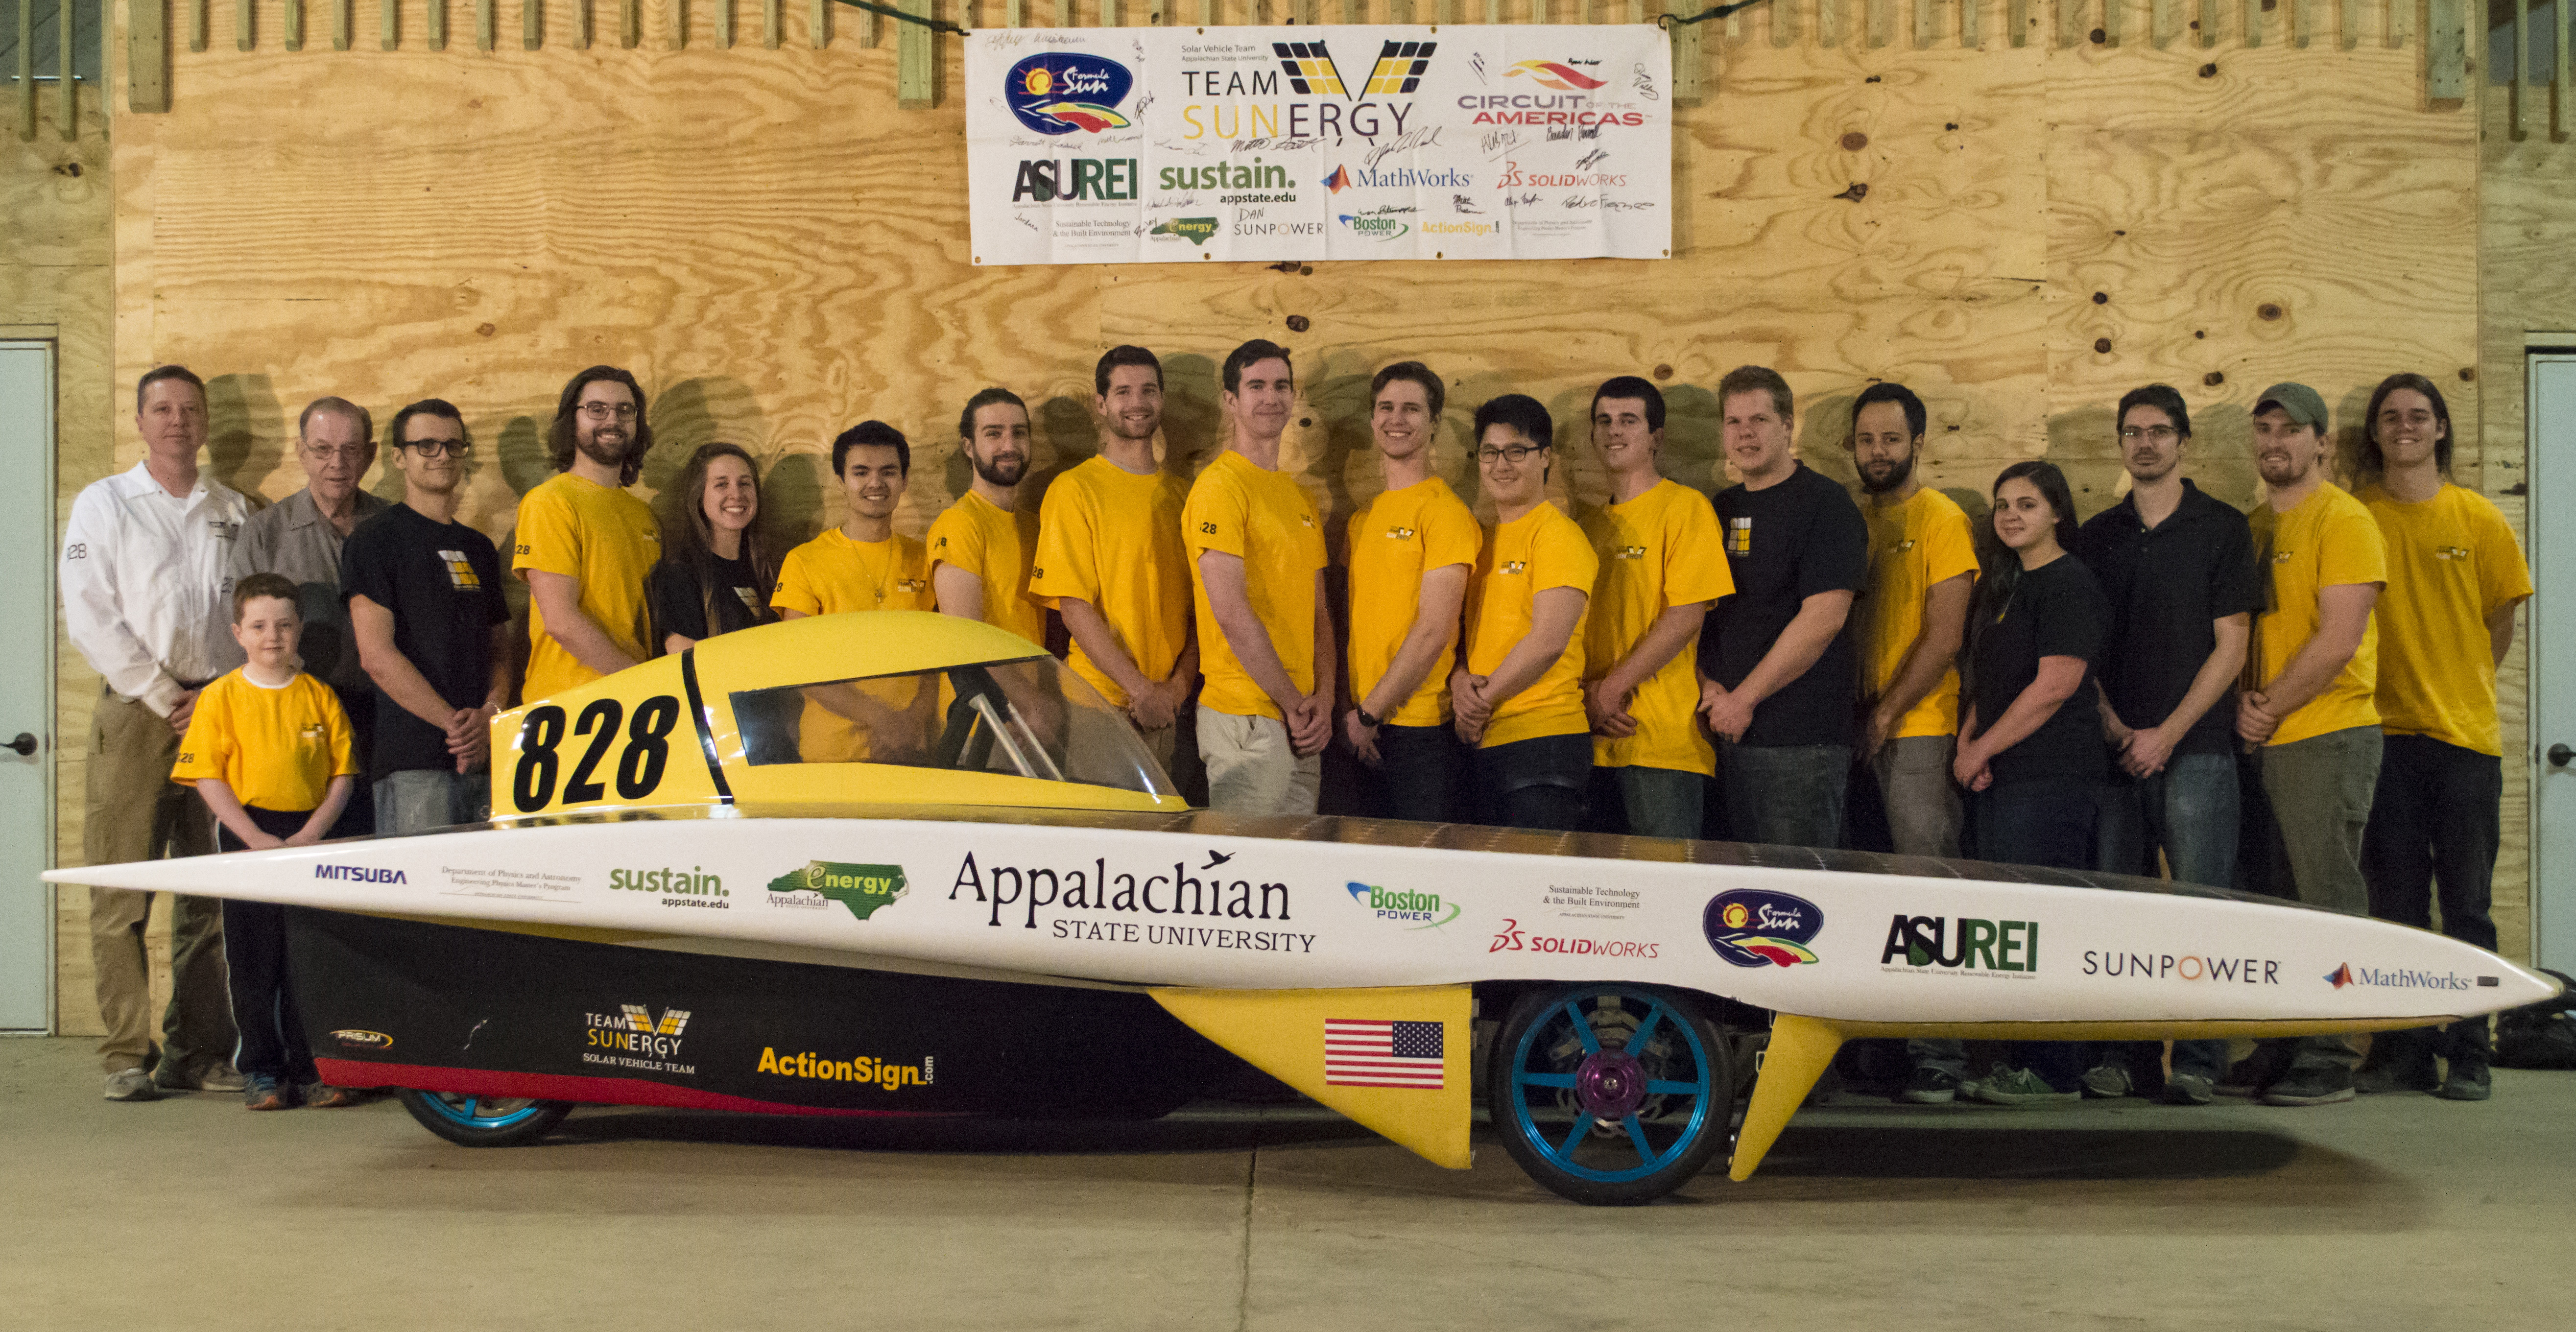 Solar Vehicle Team Preps For Summer Competition Displays Car At - Car events today near me